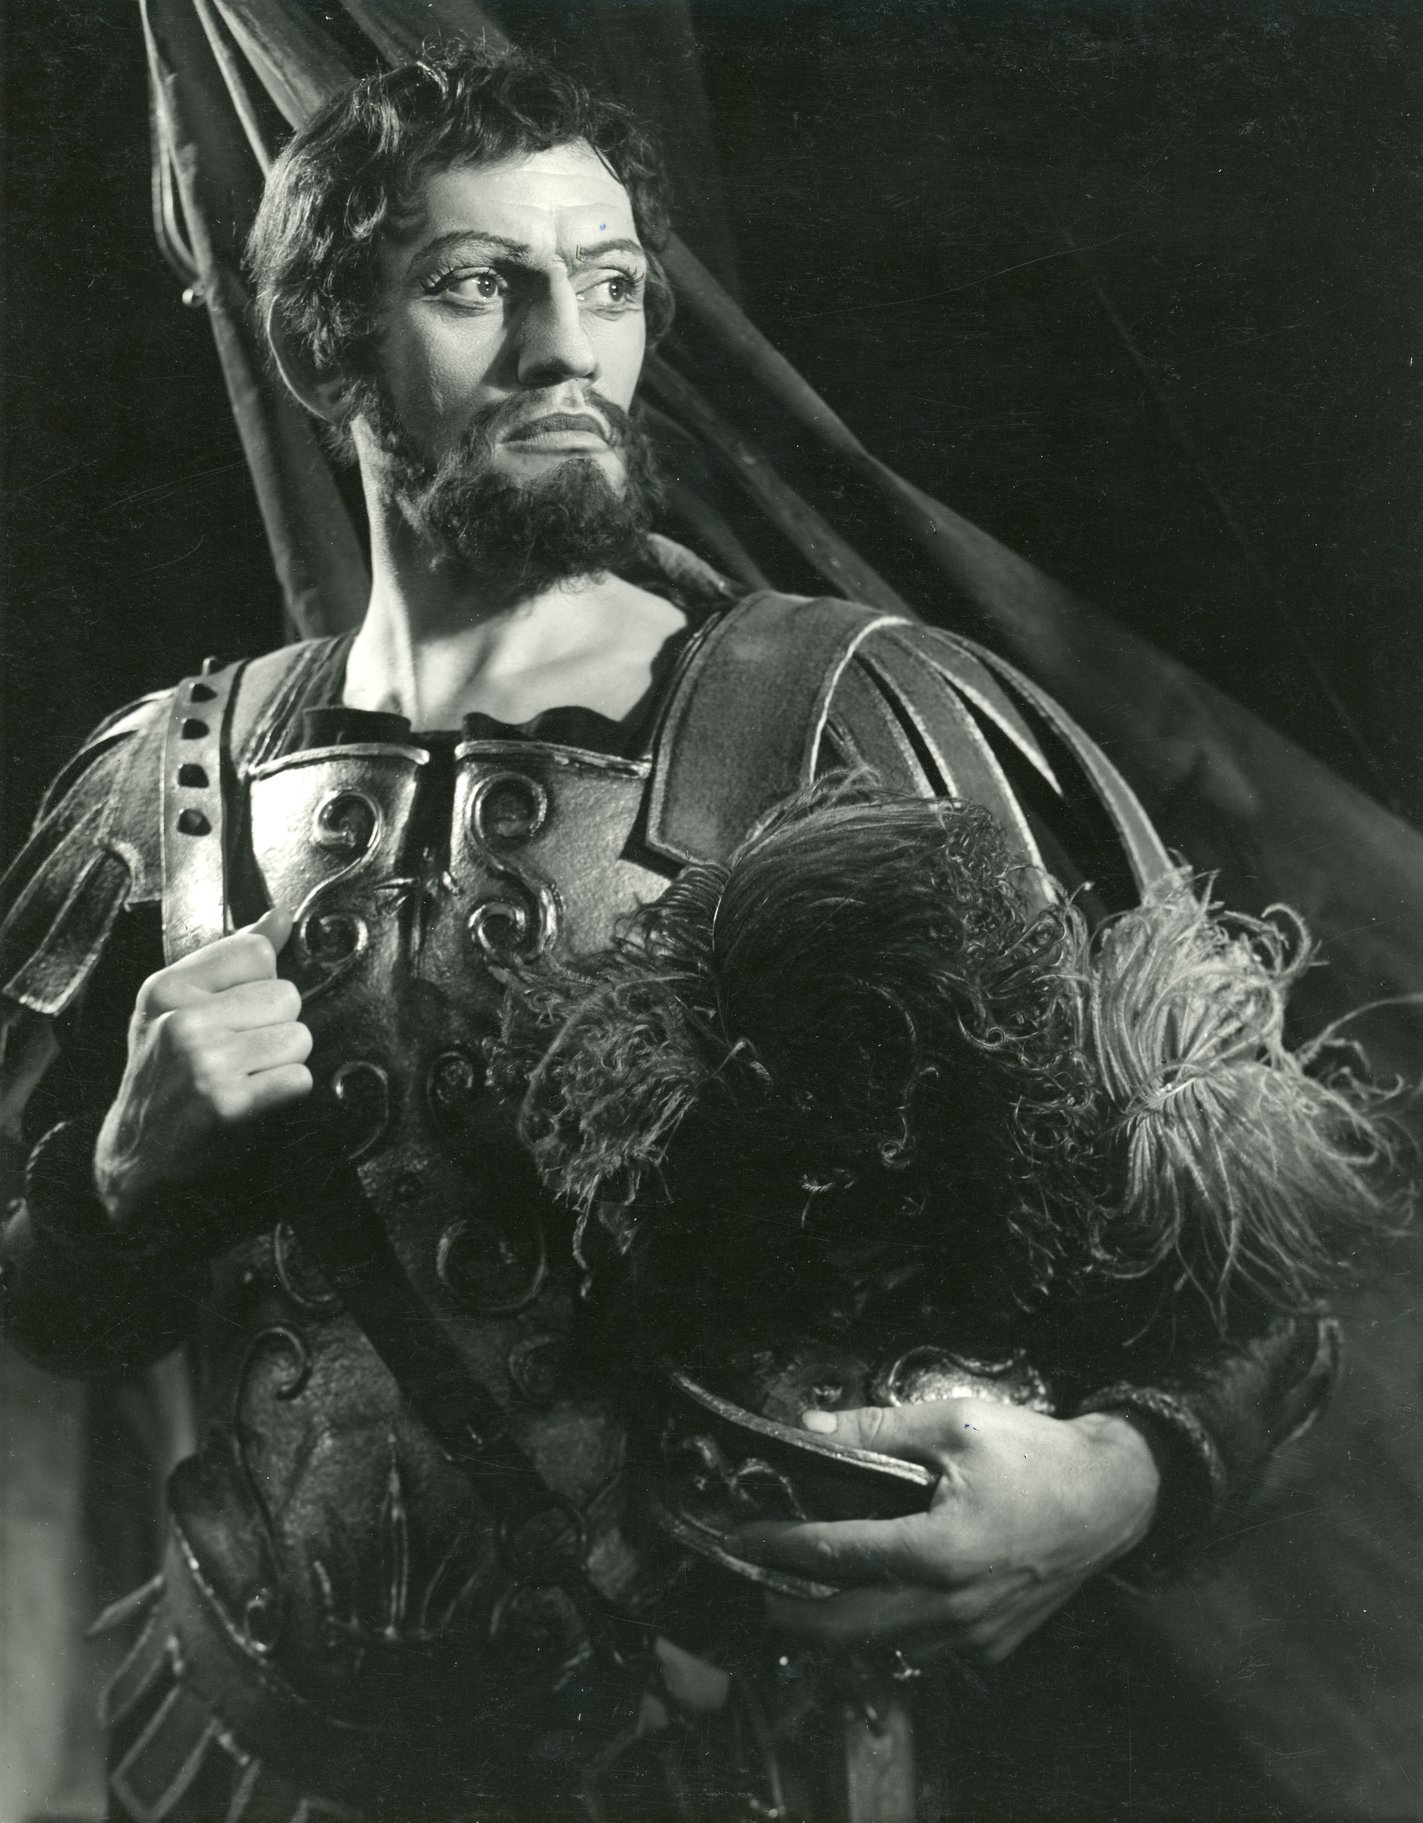 Brutus standing wearing armour and holding an elaborate helmet under his left arm